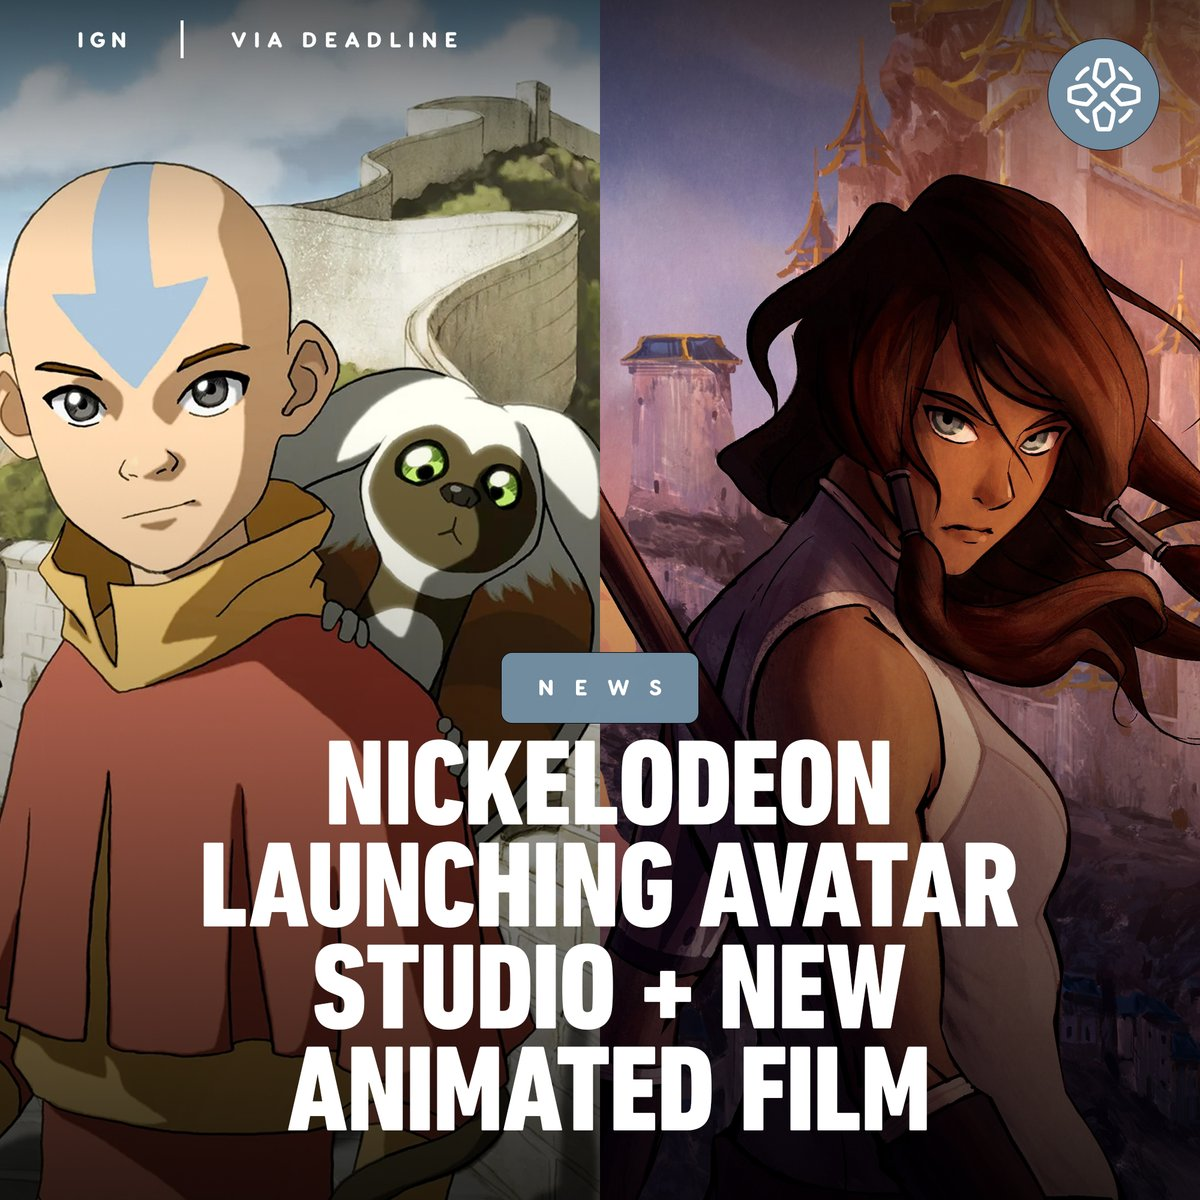 Nickelodeon is launching an animation studio dedicated to Avatar, which will include a feature-length animated film and other future projects.